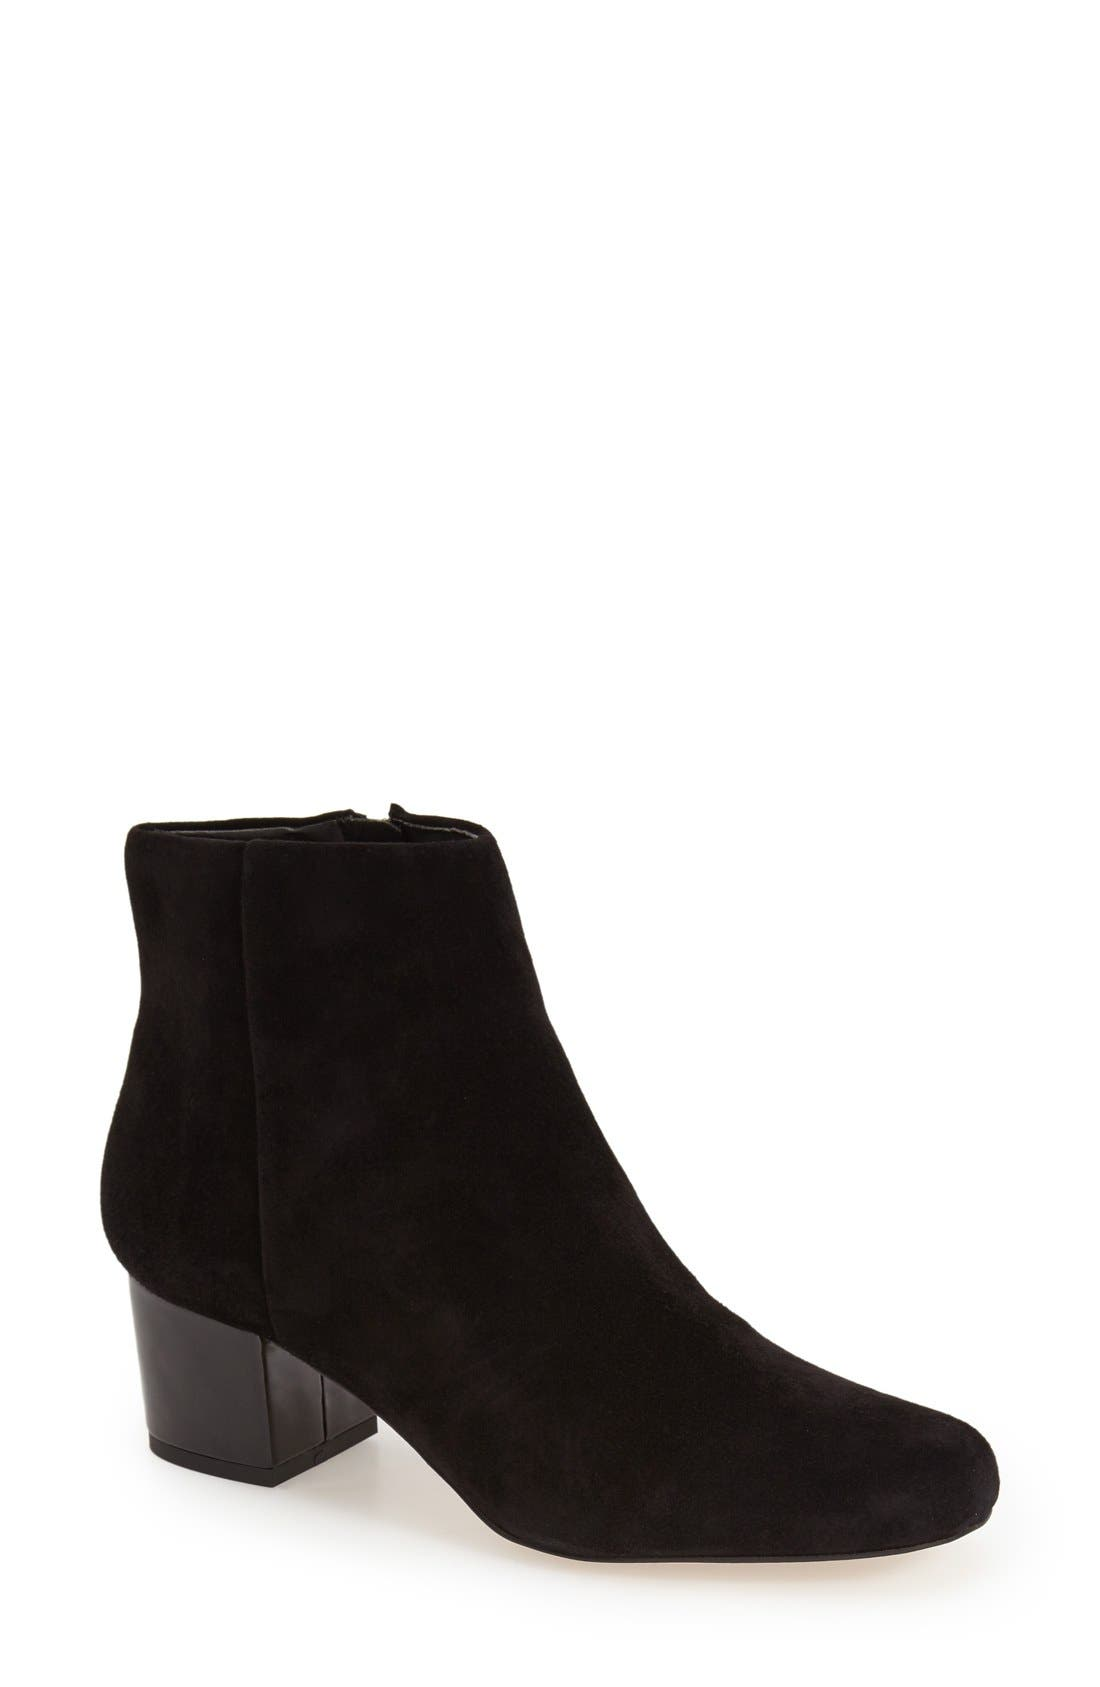 Main Image - Sam Edelman 'Edith'  Bootie (Women)